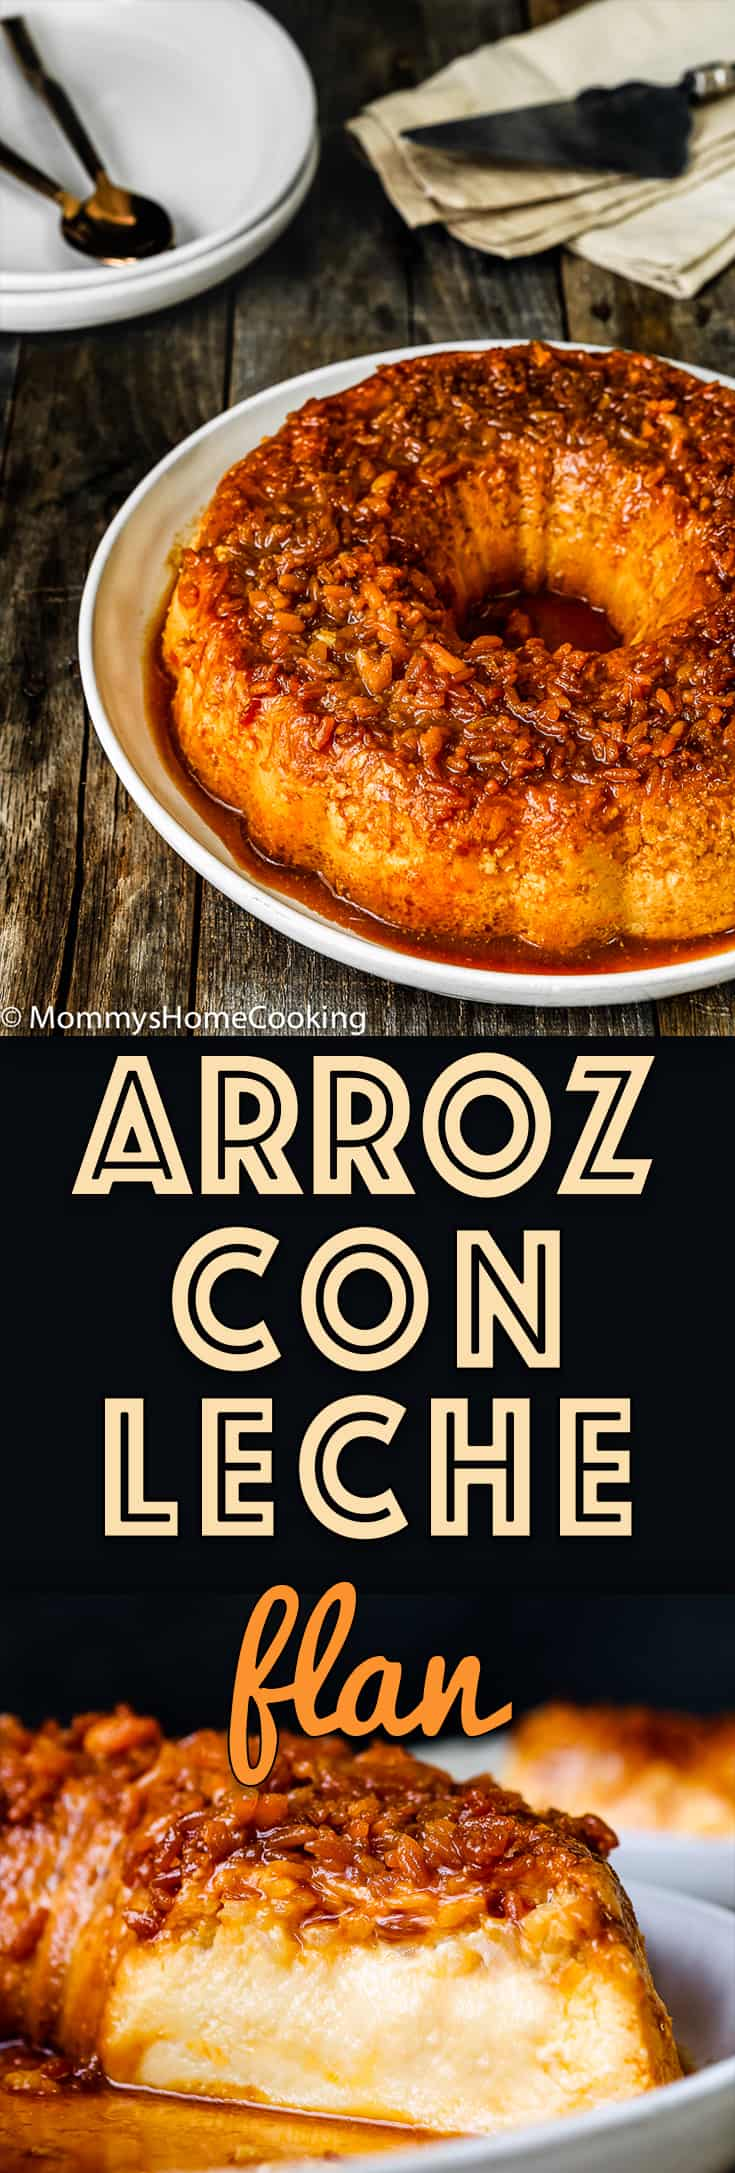 Arroz con Leche Flan is the result of the combination of two classics in one bite! It's ultra-creamy, silky and crazy delicious. You won't be able to resist a second slice. https://mommyshomecooking.com